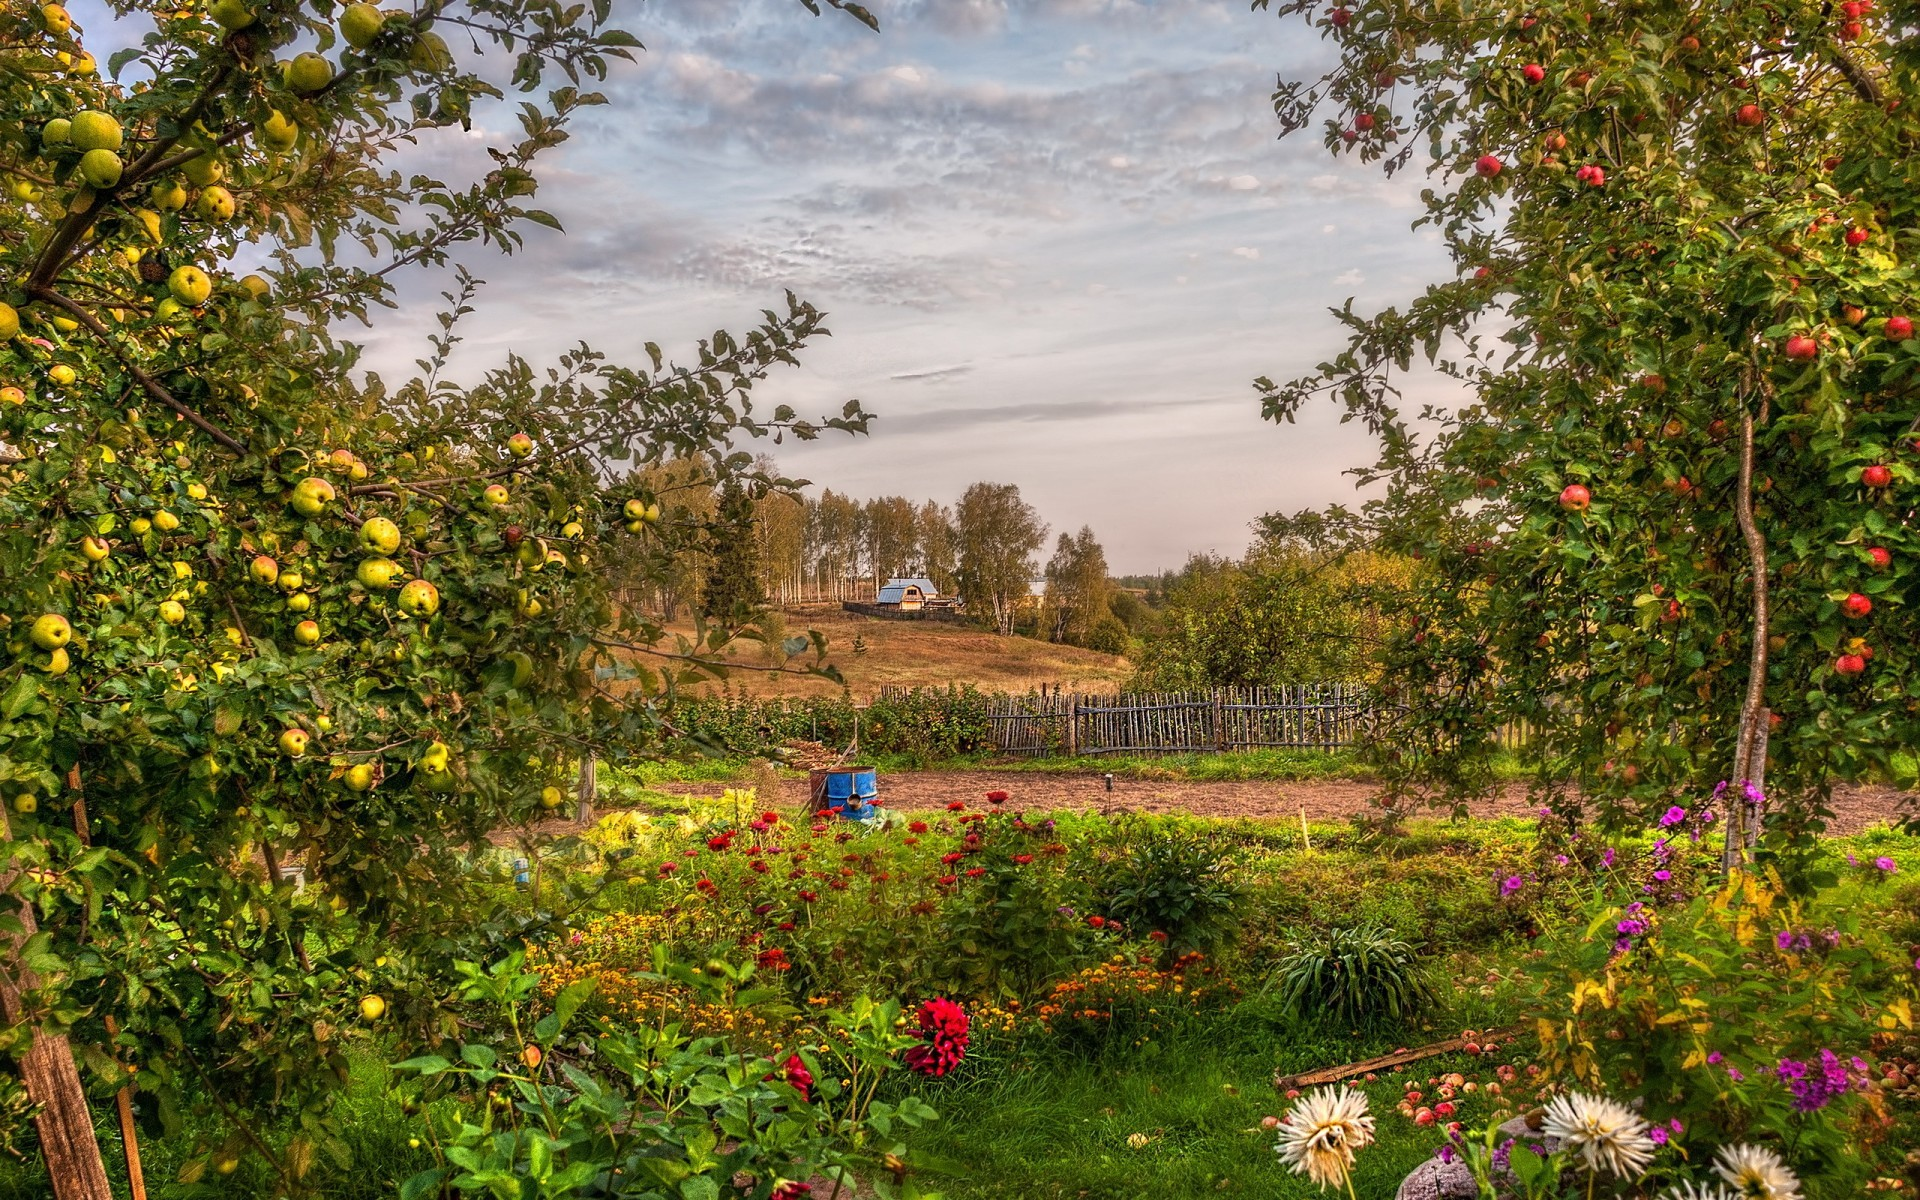 1920x1200 Garden summer landscape apples orchard hdr flowers wallpaper |  |  48182 | WallpaperUP